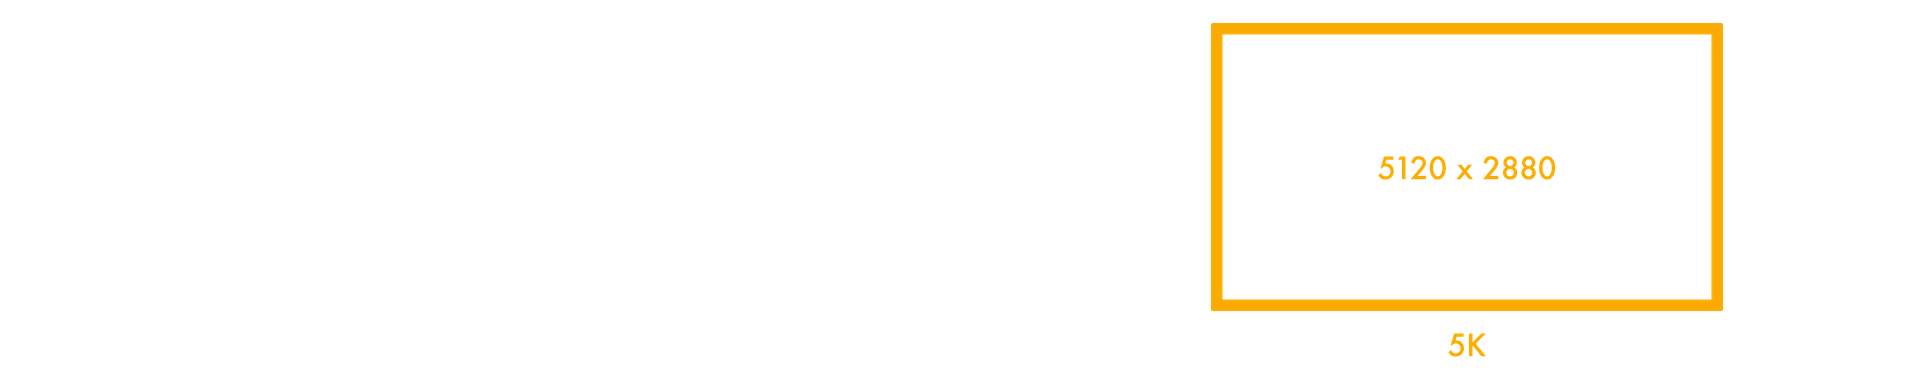 5k resolution